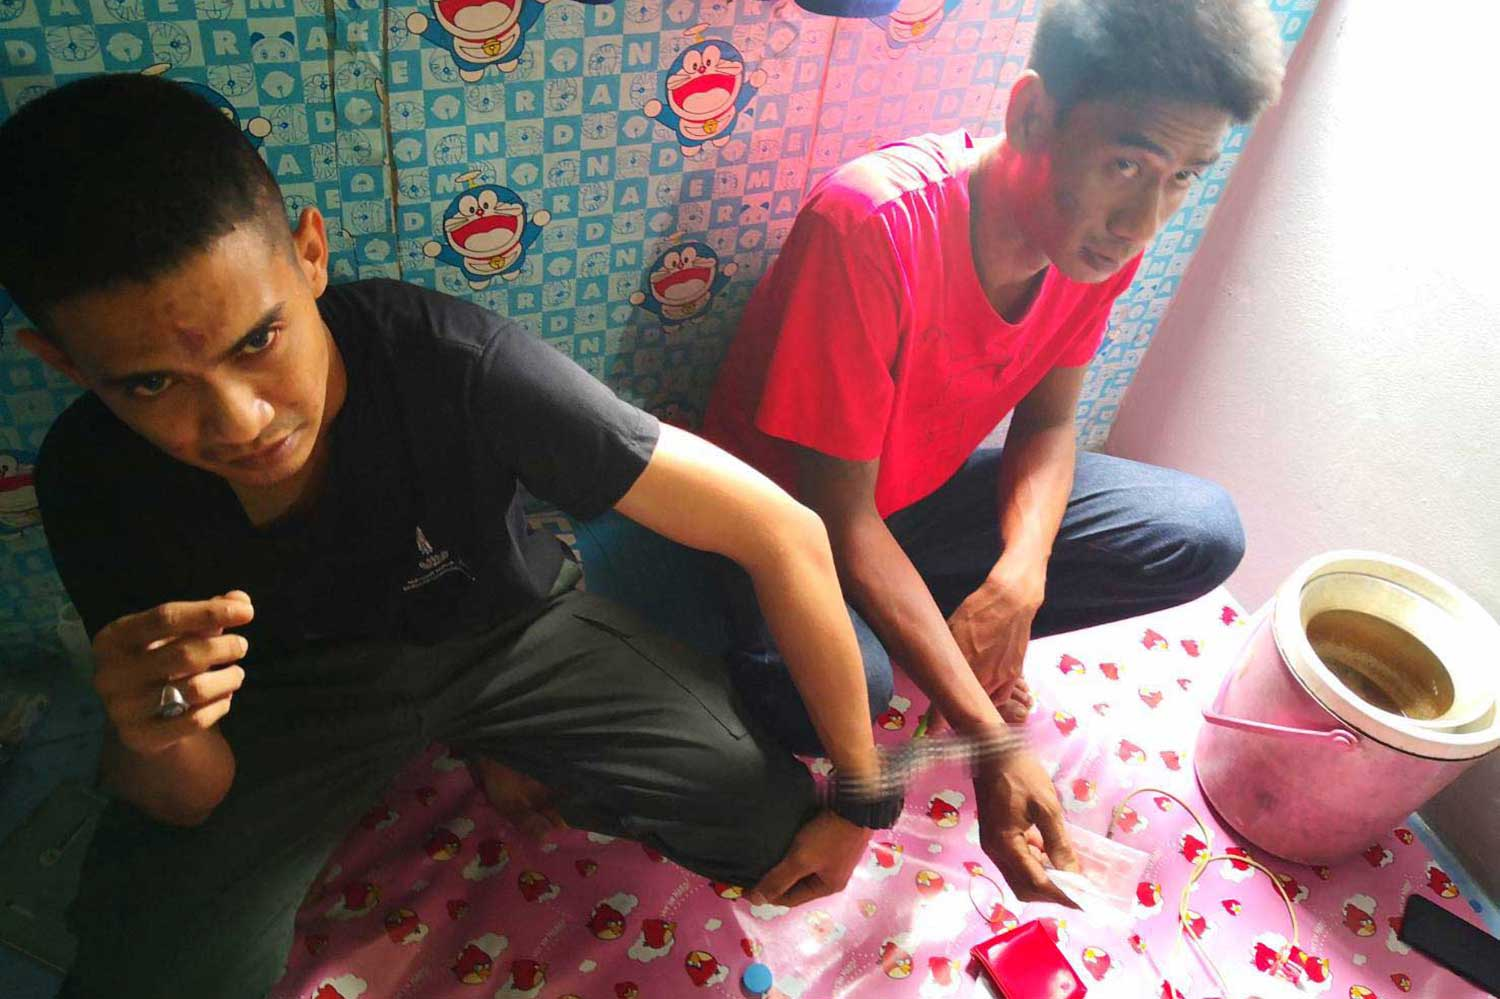 Pol Cpl Sanyalak Jandam,24, left, of Kapho police station in Pattani, and Piyapong Ruangchuay, 31, son of a local leader were arrested in possession of drugs at a house in Bang Klam district of Songkhla on Monday night. (Pool photos, via Assawin Pakkawan)